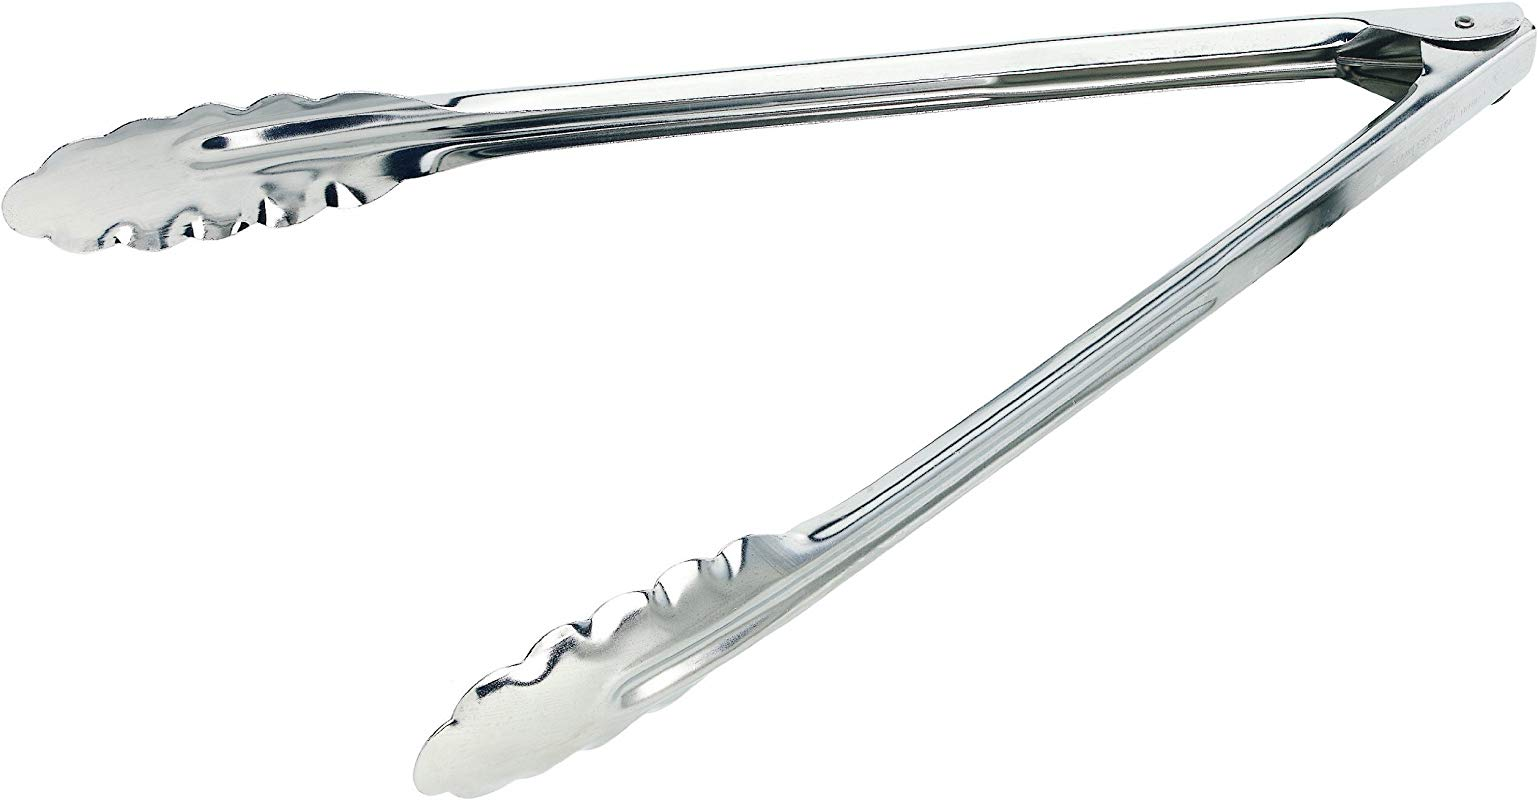 Crestware HDT10X 9 1 2 Inch Extra Heavy Duty Tong 1 Silver